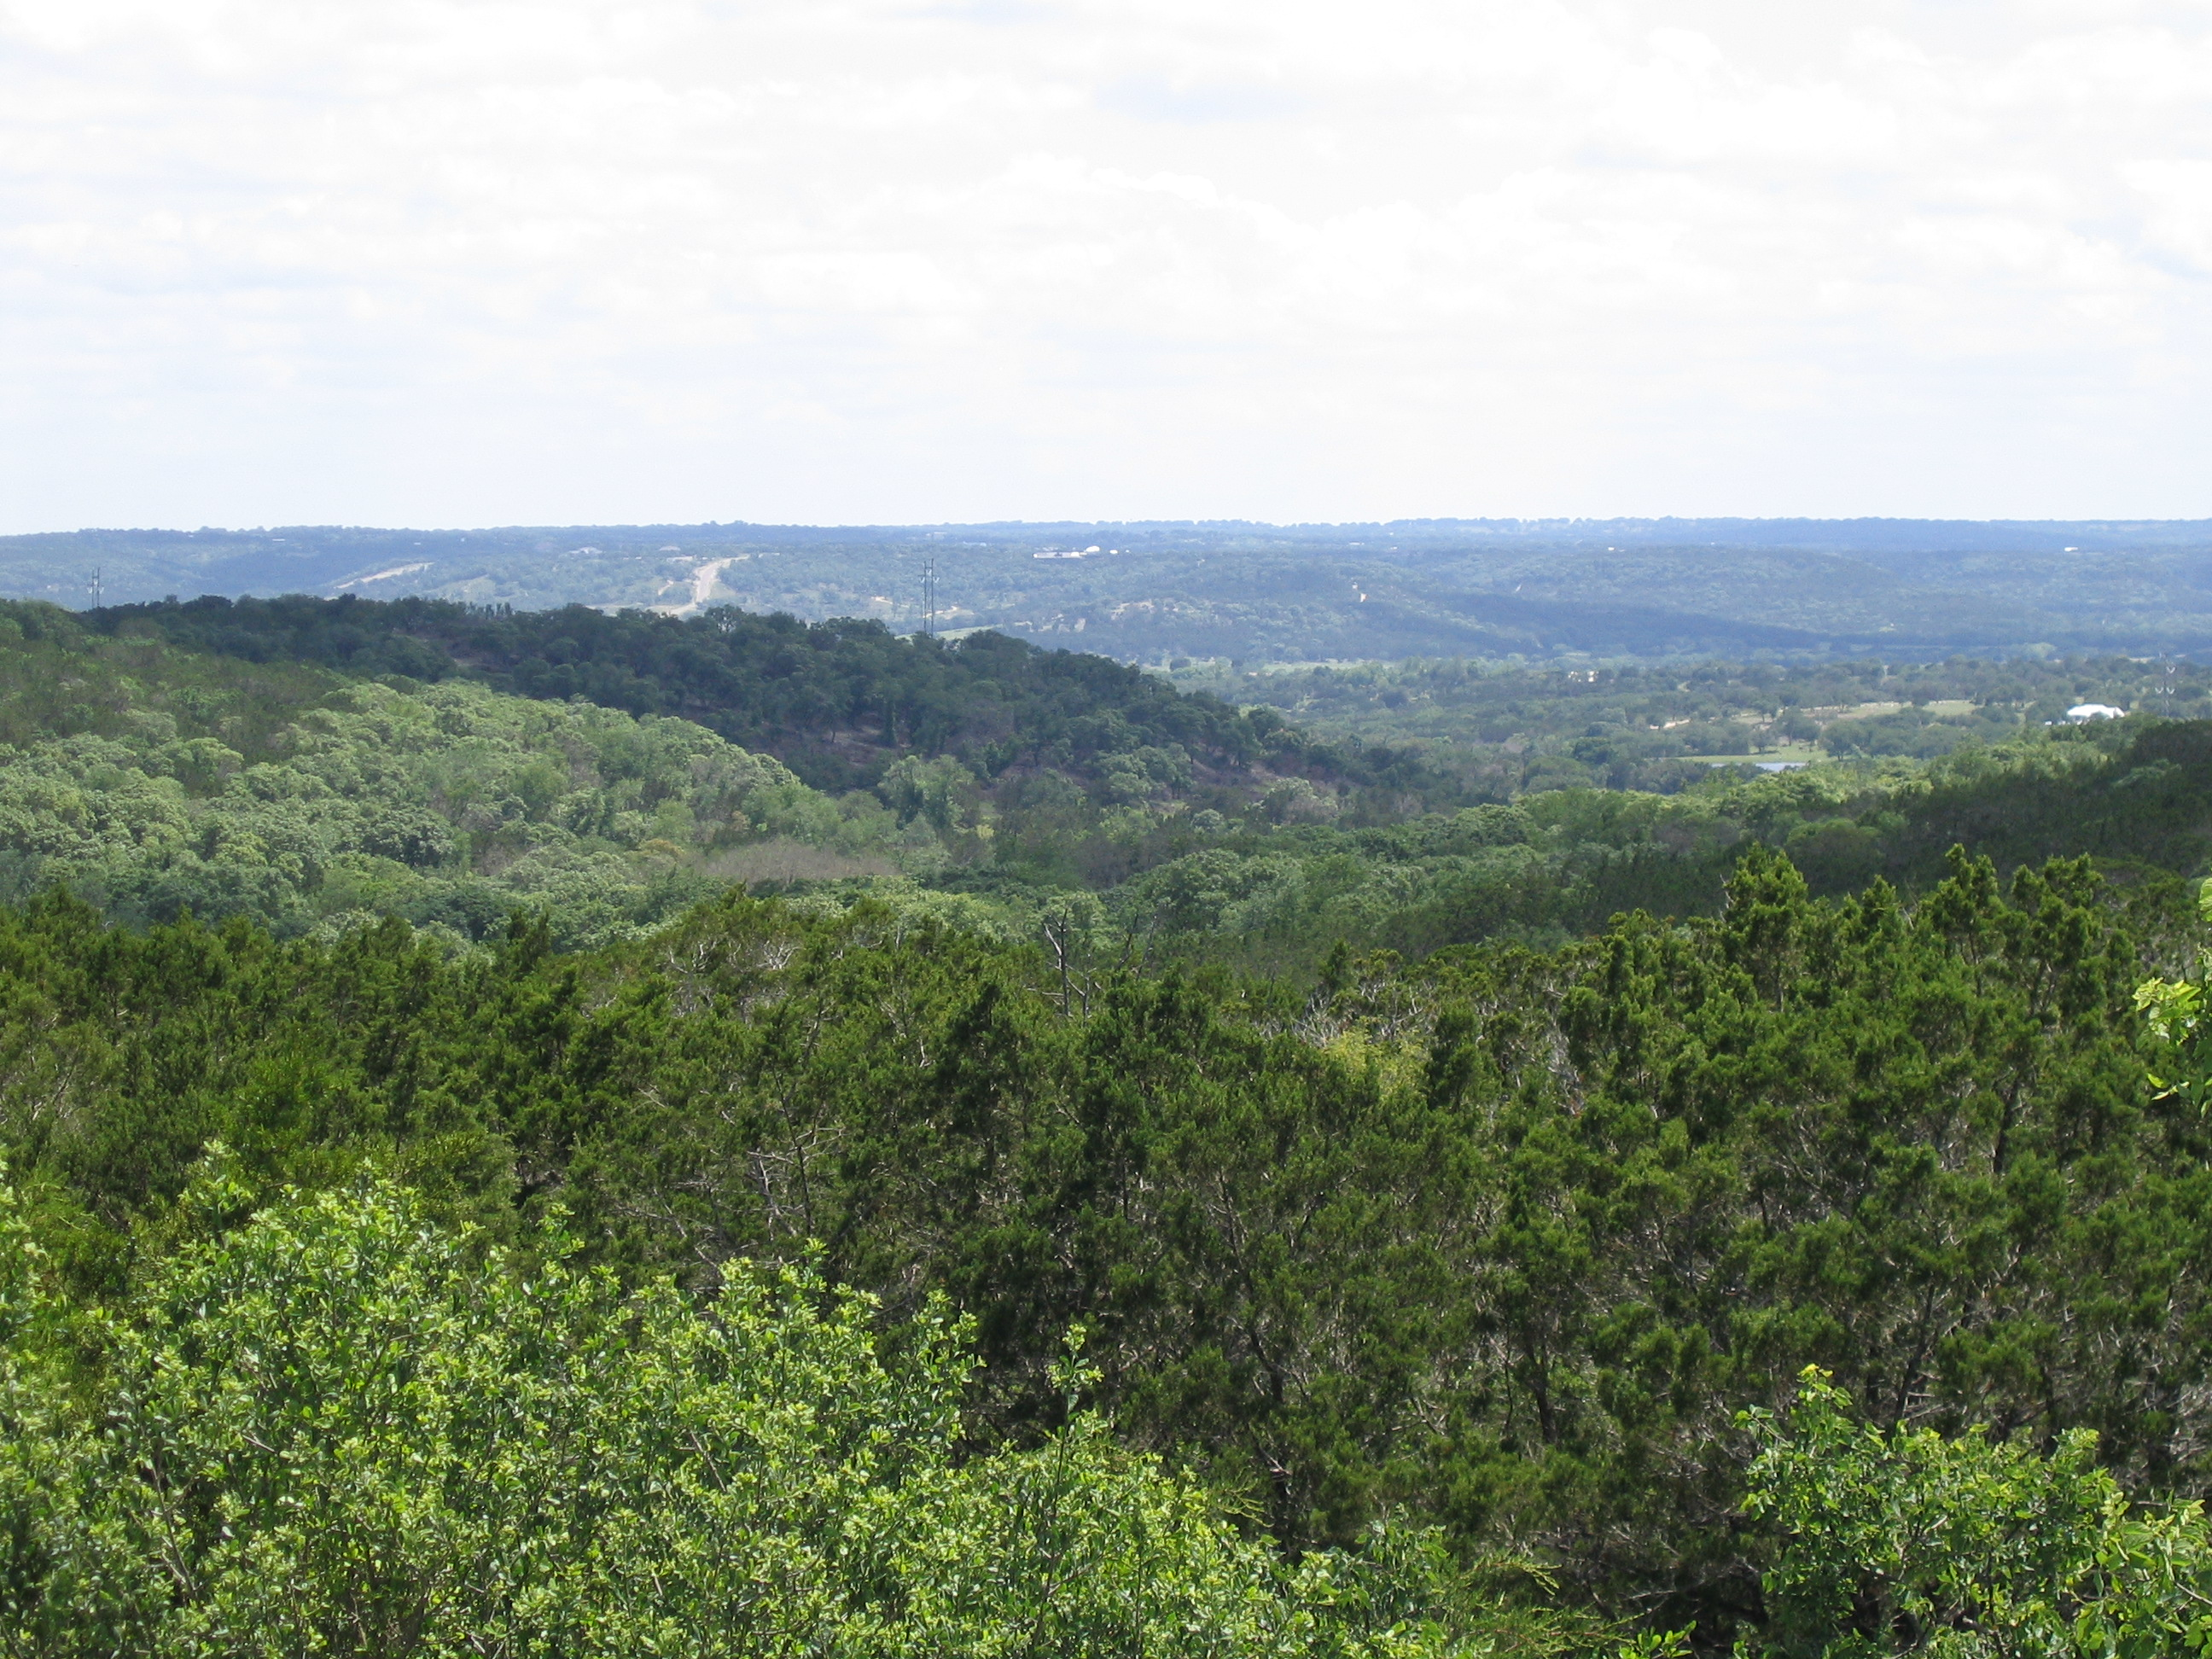 hill county dating One of our favorite places to visit in those younger years was the hill country,  llano county to the west and burnet county to the  dating back to before.